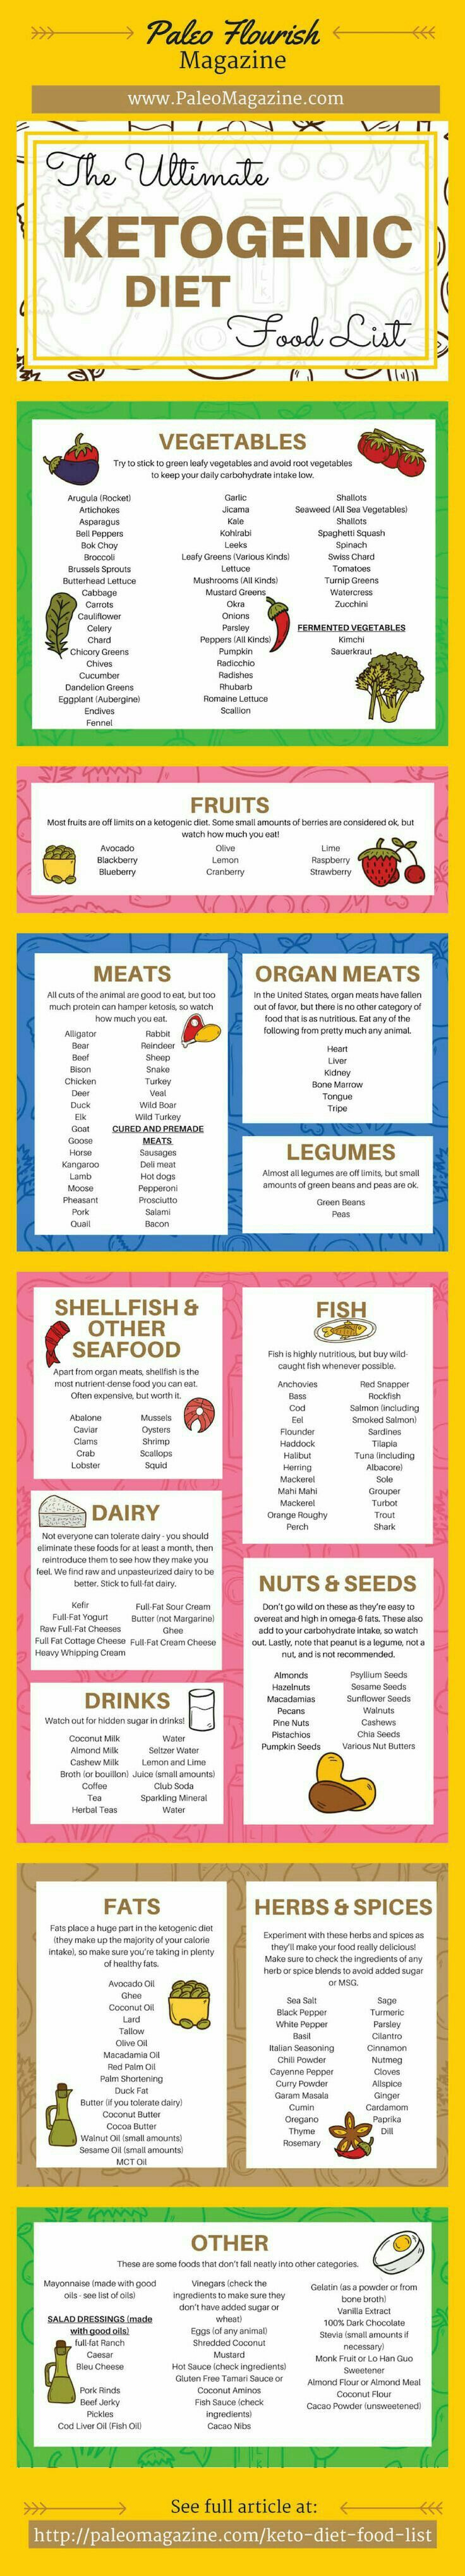 Pin By Carla Lampkin On Recipes Metabolic Typing Pinterest